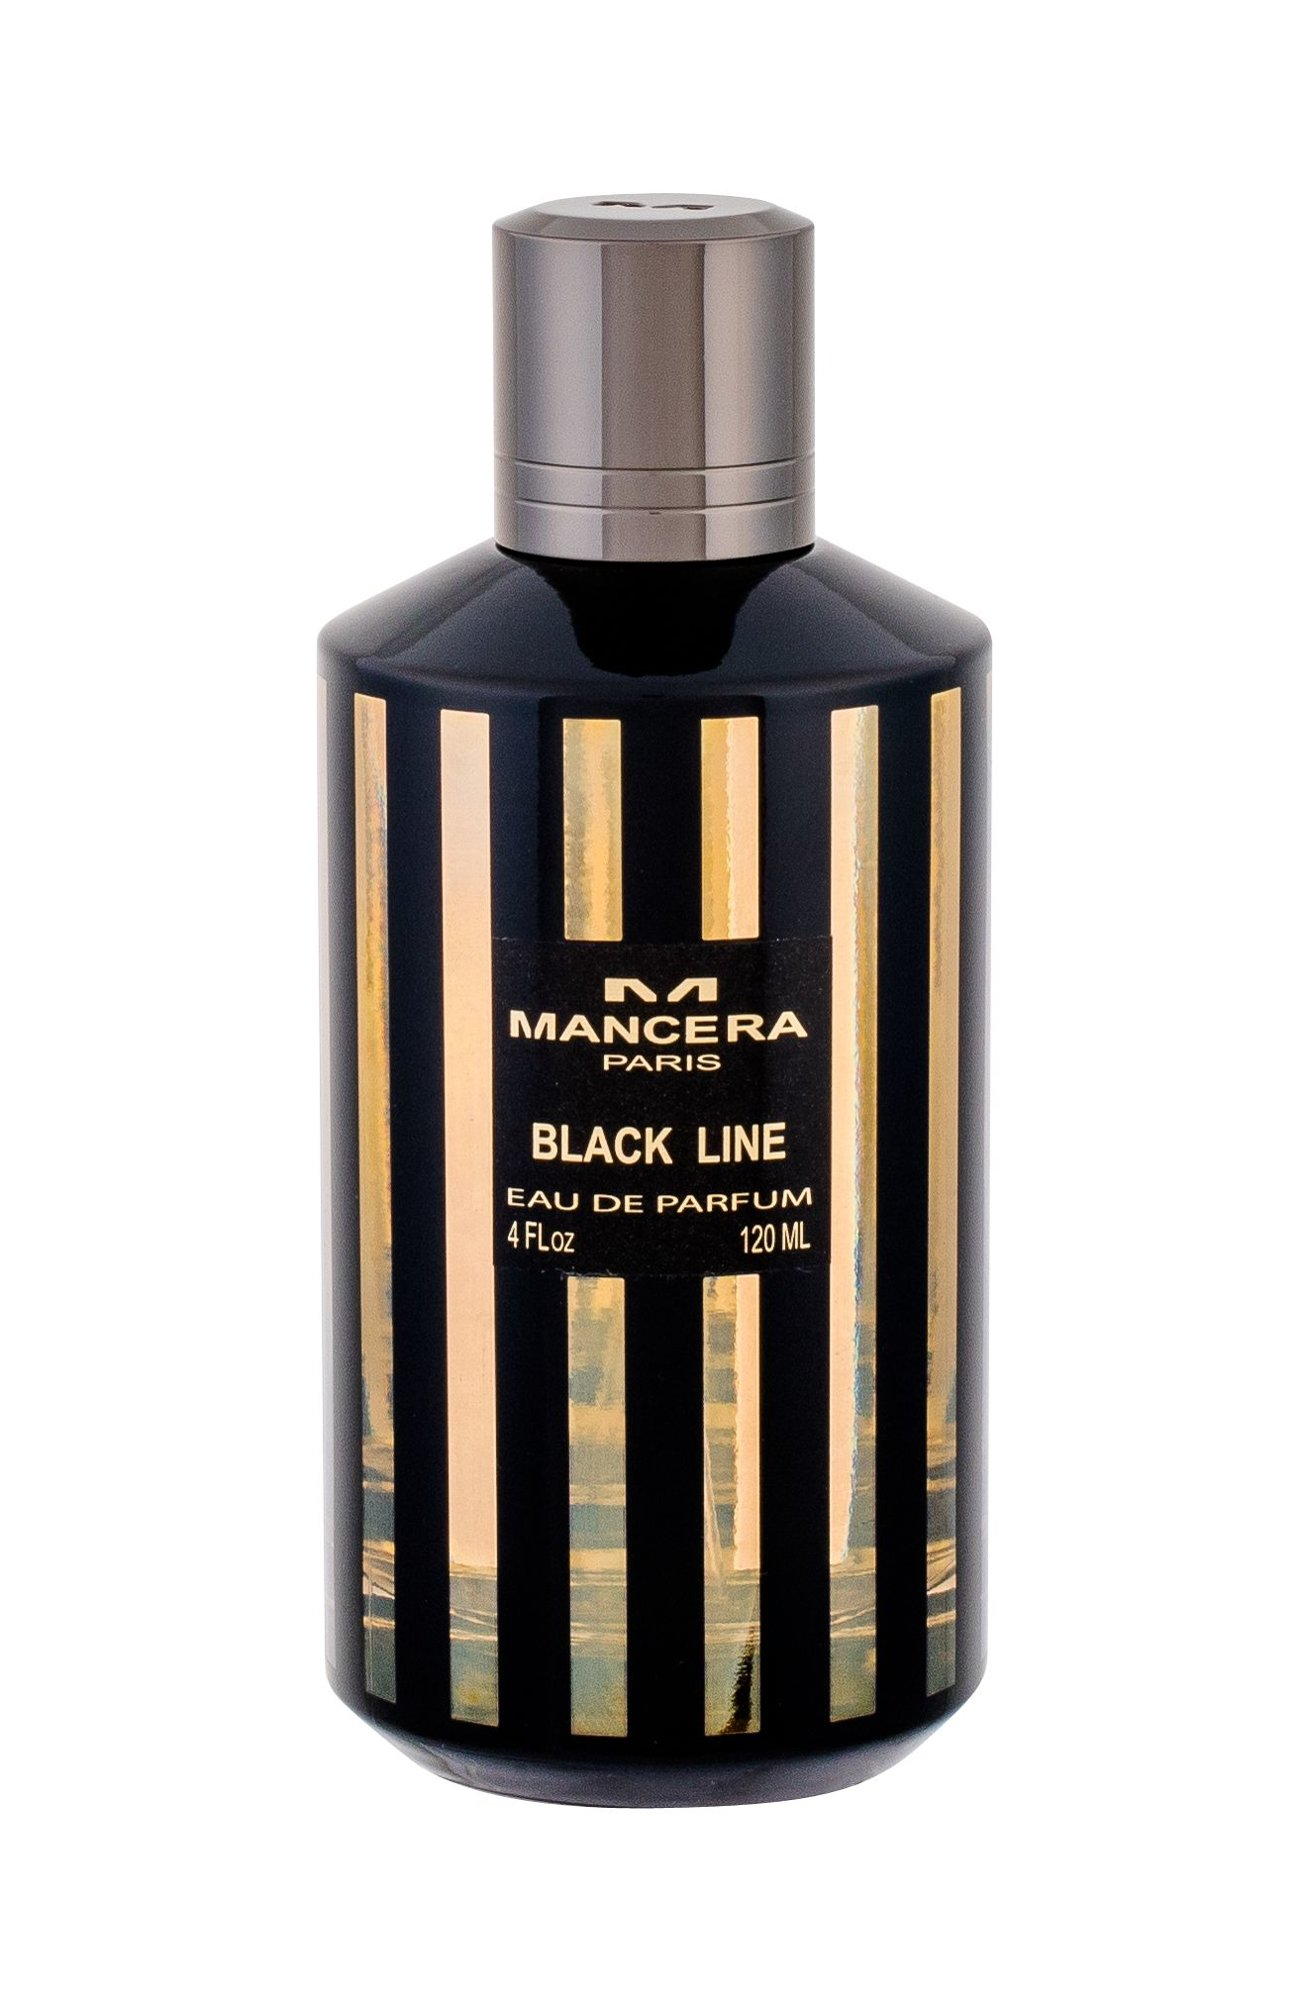 MANCERA Black Line EDP 120ml